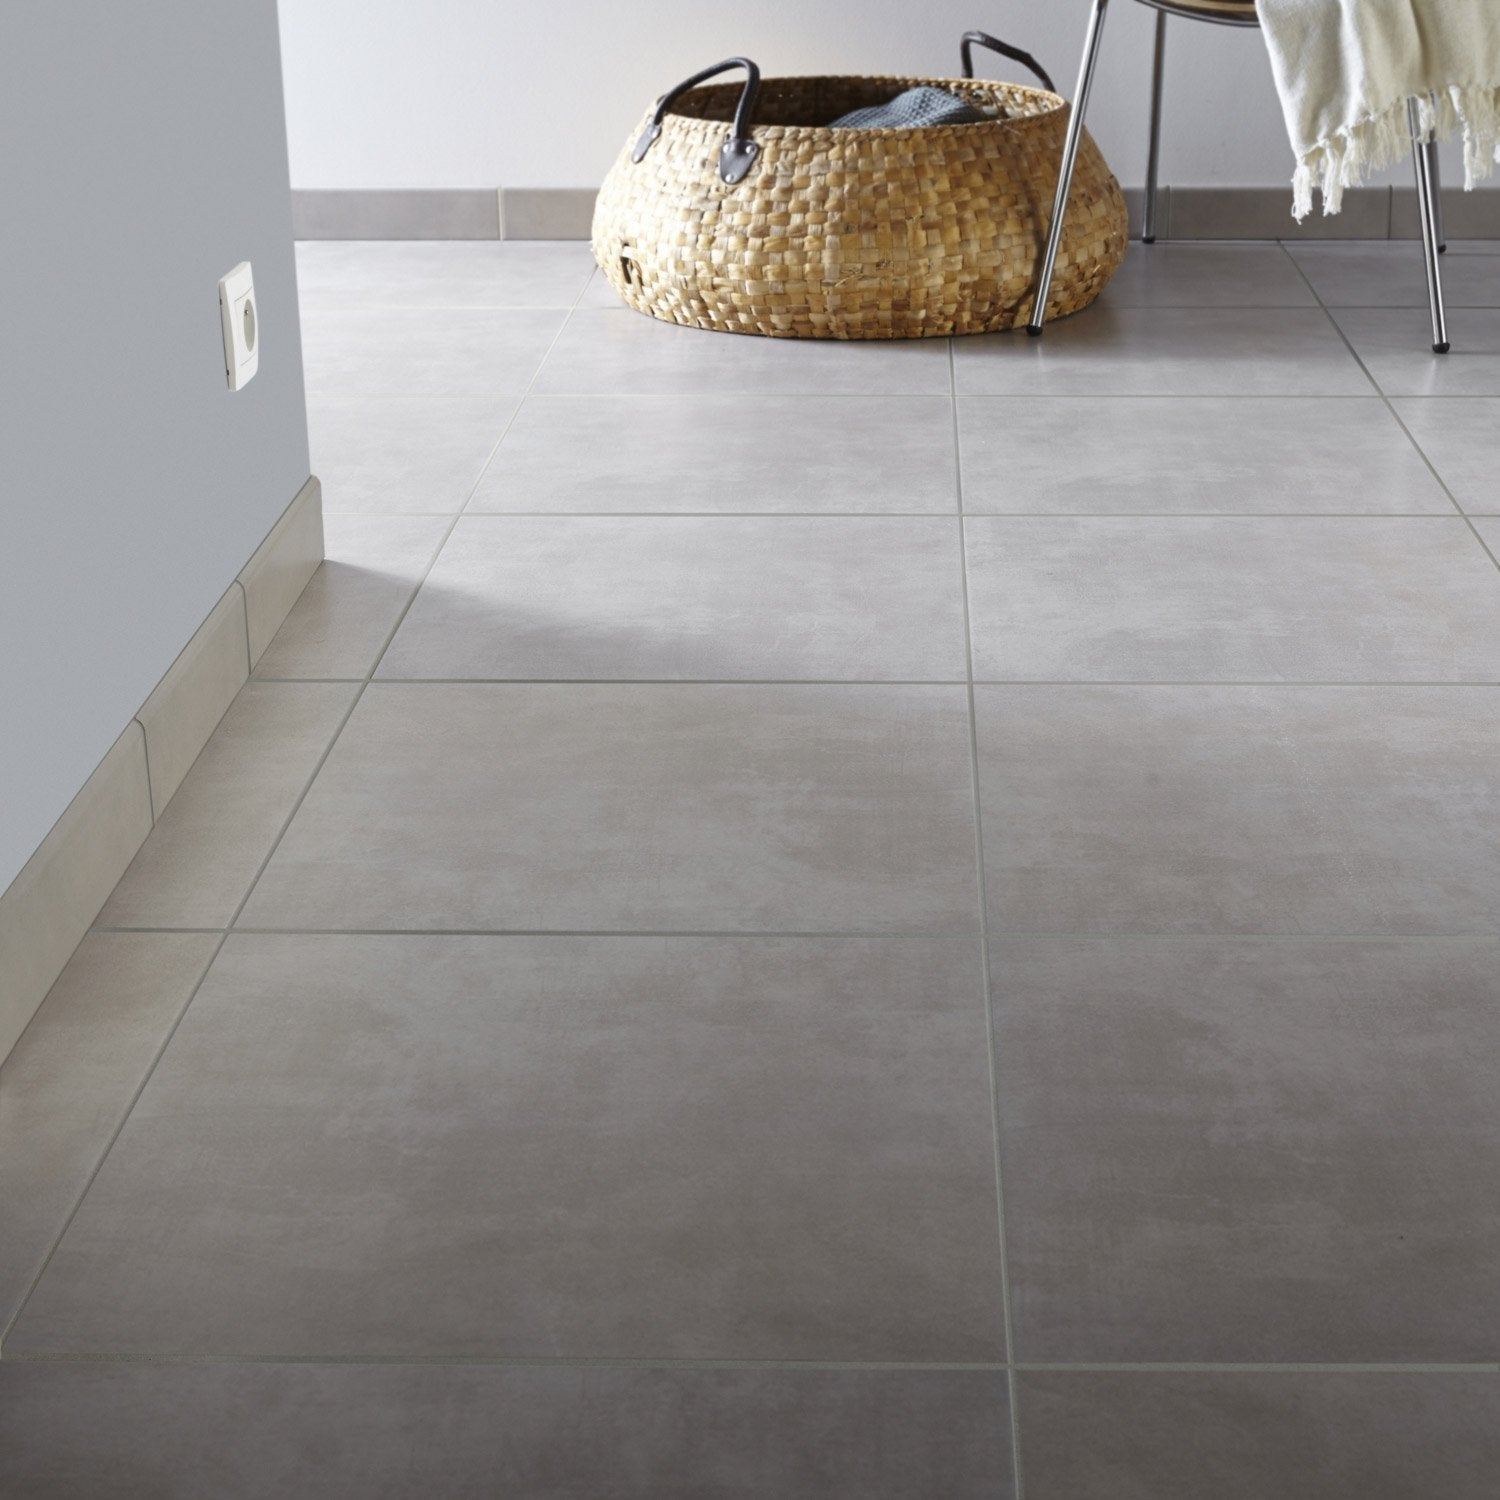 Carrelage sol et mur taupe effet b ton kiosque x for Carrelage style